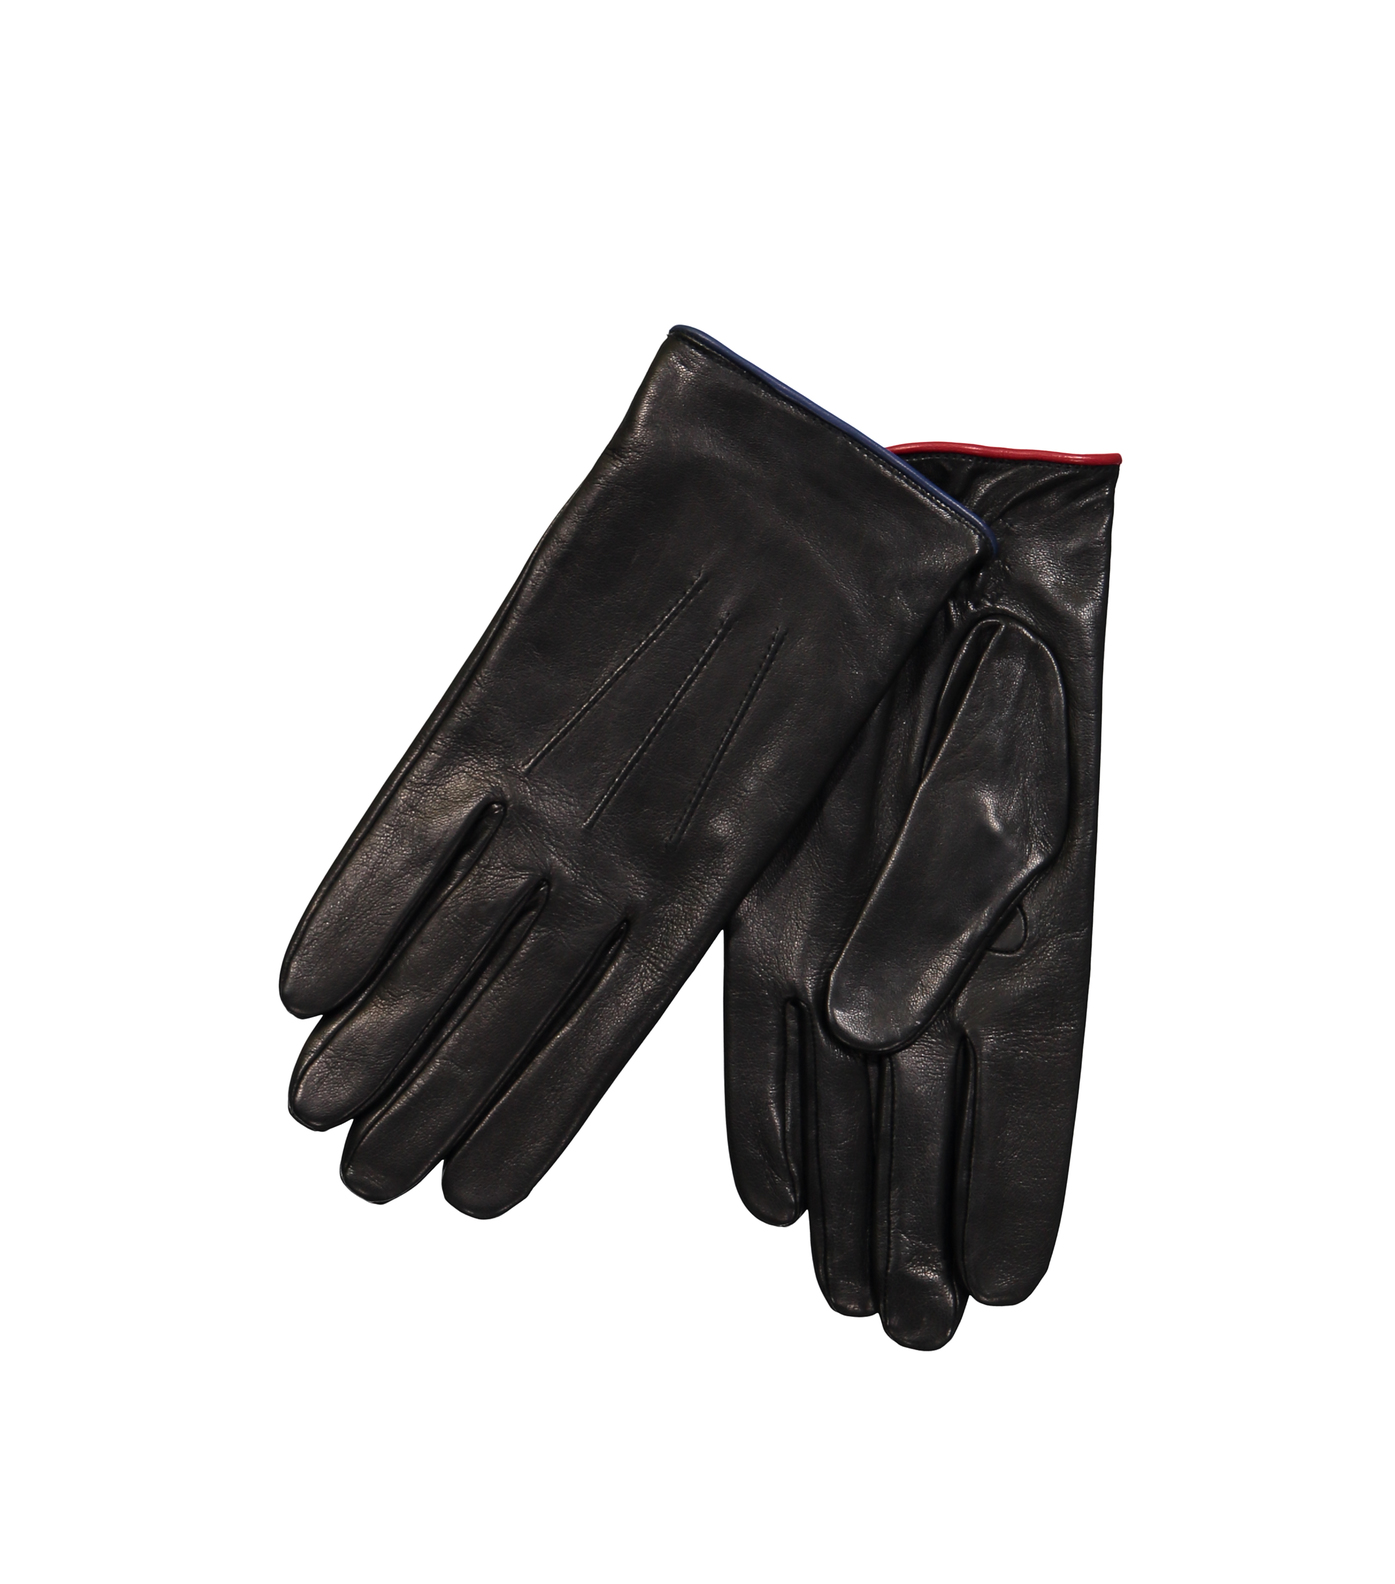 GLOVES COMMUNE - Black